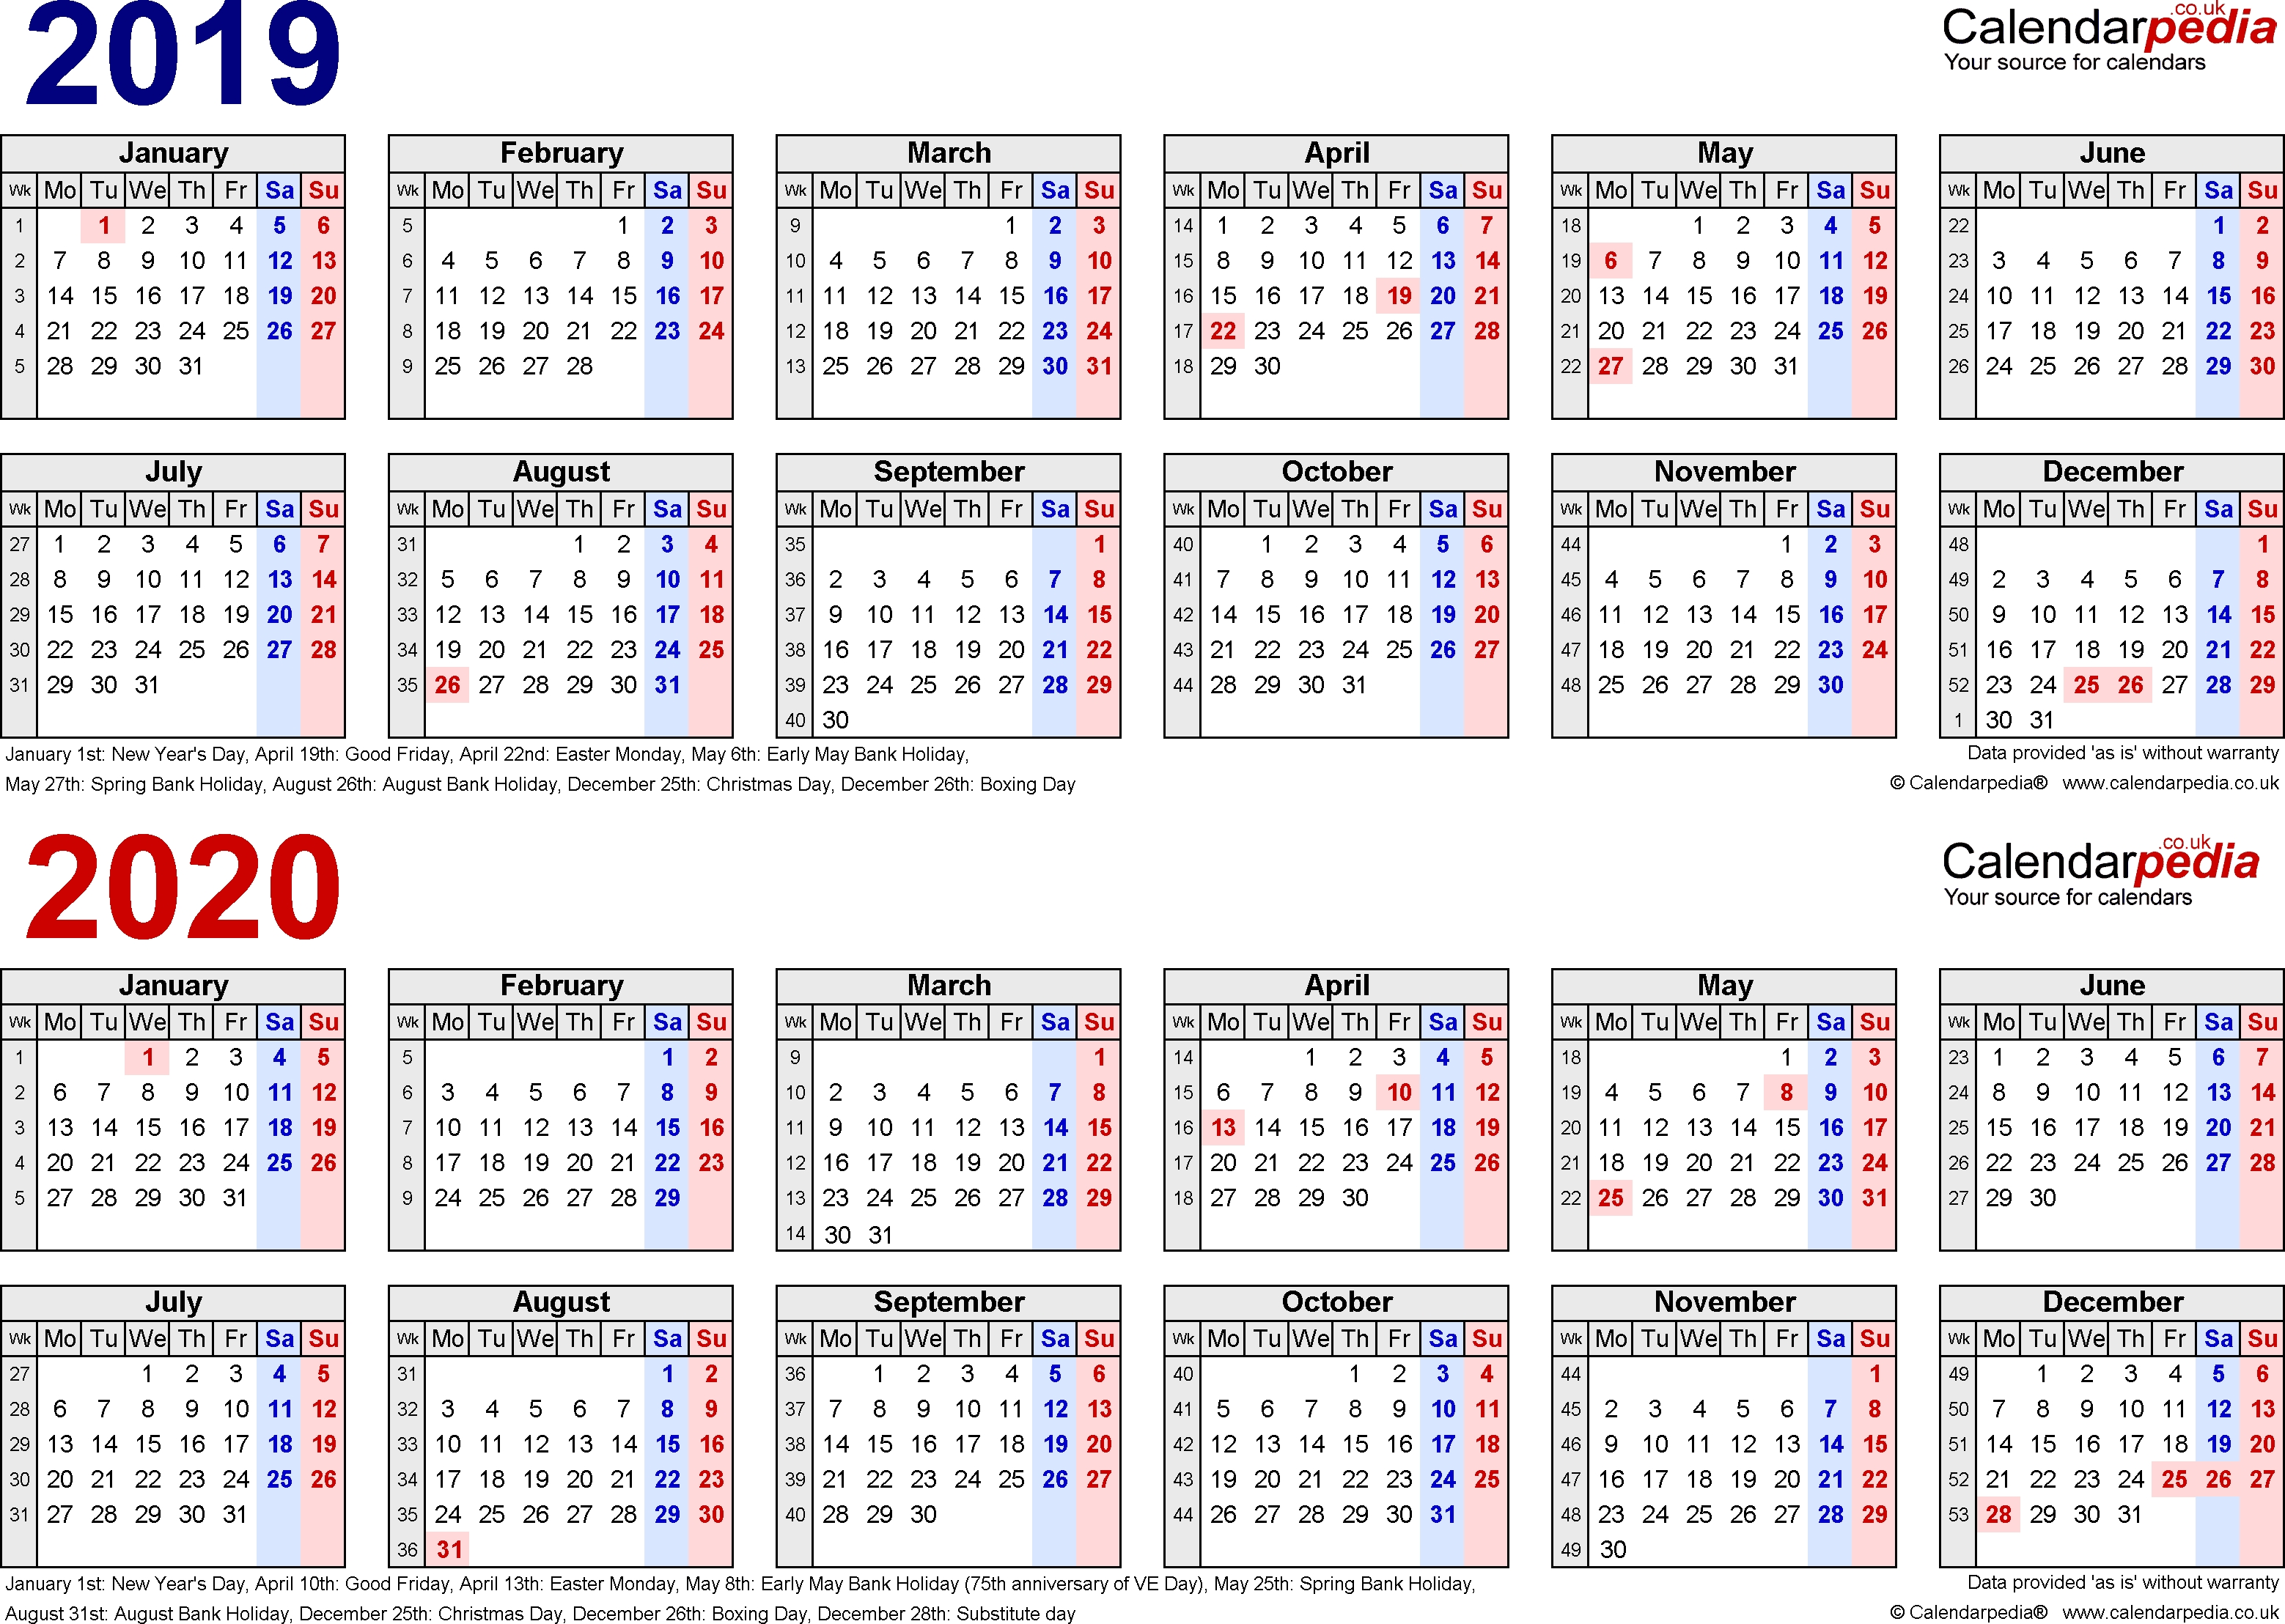 Two Year Calendars For 2019 & 2020 (Uk) For Pdf with regard to A4 Yearly Calendars For 2019 And 2020